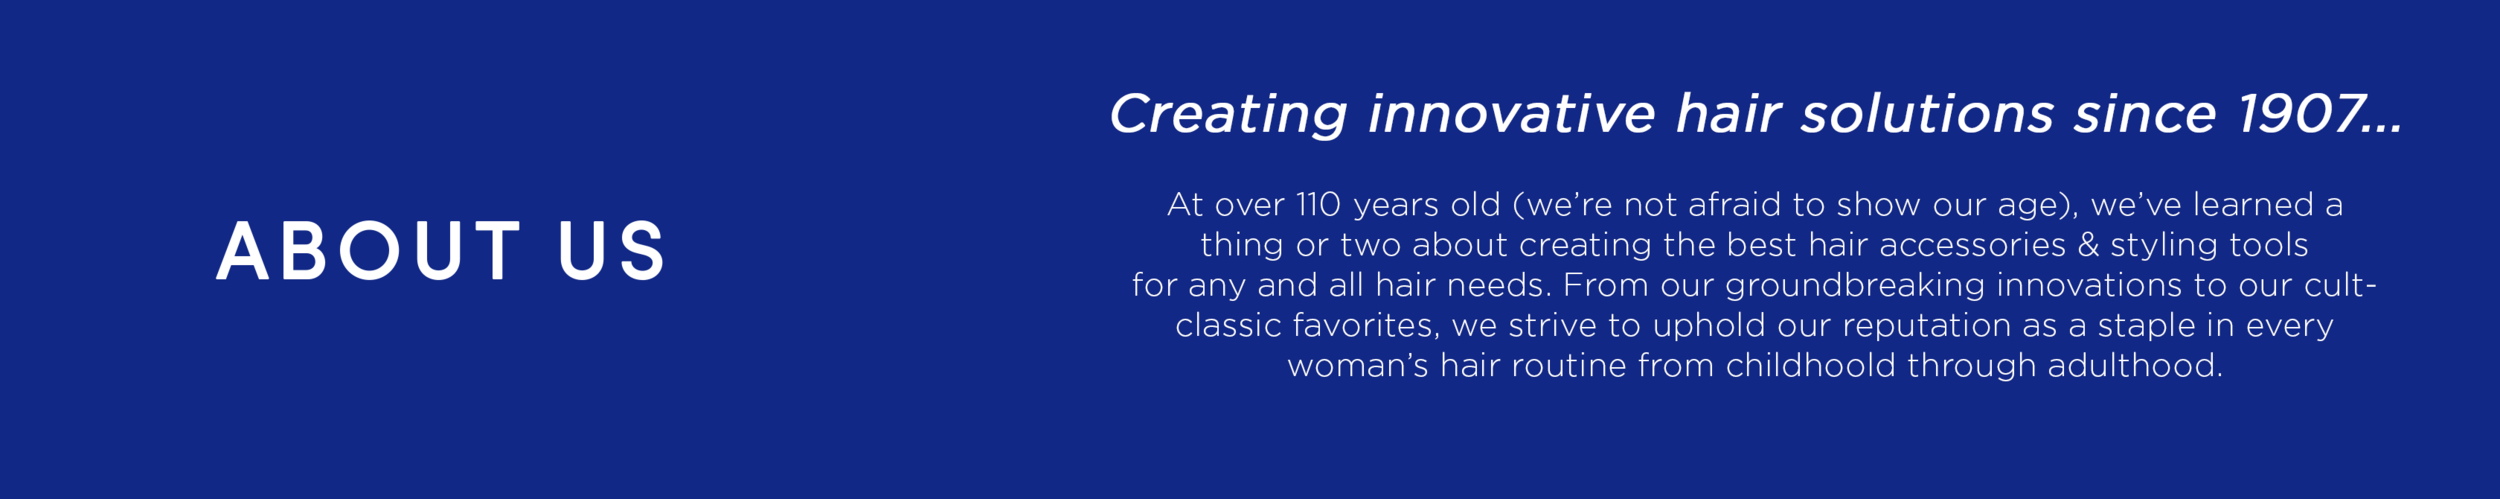 About Us - Innovating affordable beauty since 1907… At over 110 years old (we're not afraid to show our age), we've learned a thing or two about creating the best hair accessories & styling tools that won't break the bank. From our groundbreaking innovations to our cult-classic favorites, we strive to uphold our reputation as a staple in every woman's hair routine from childhood through adulthood.